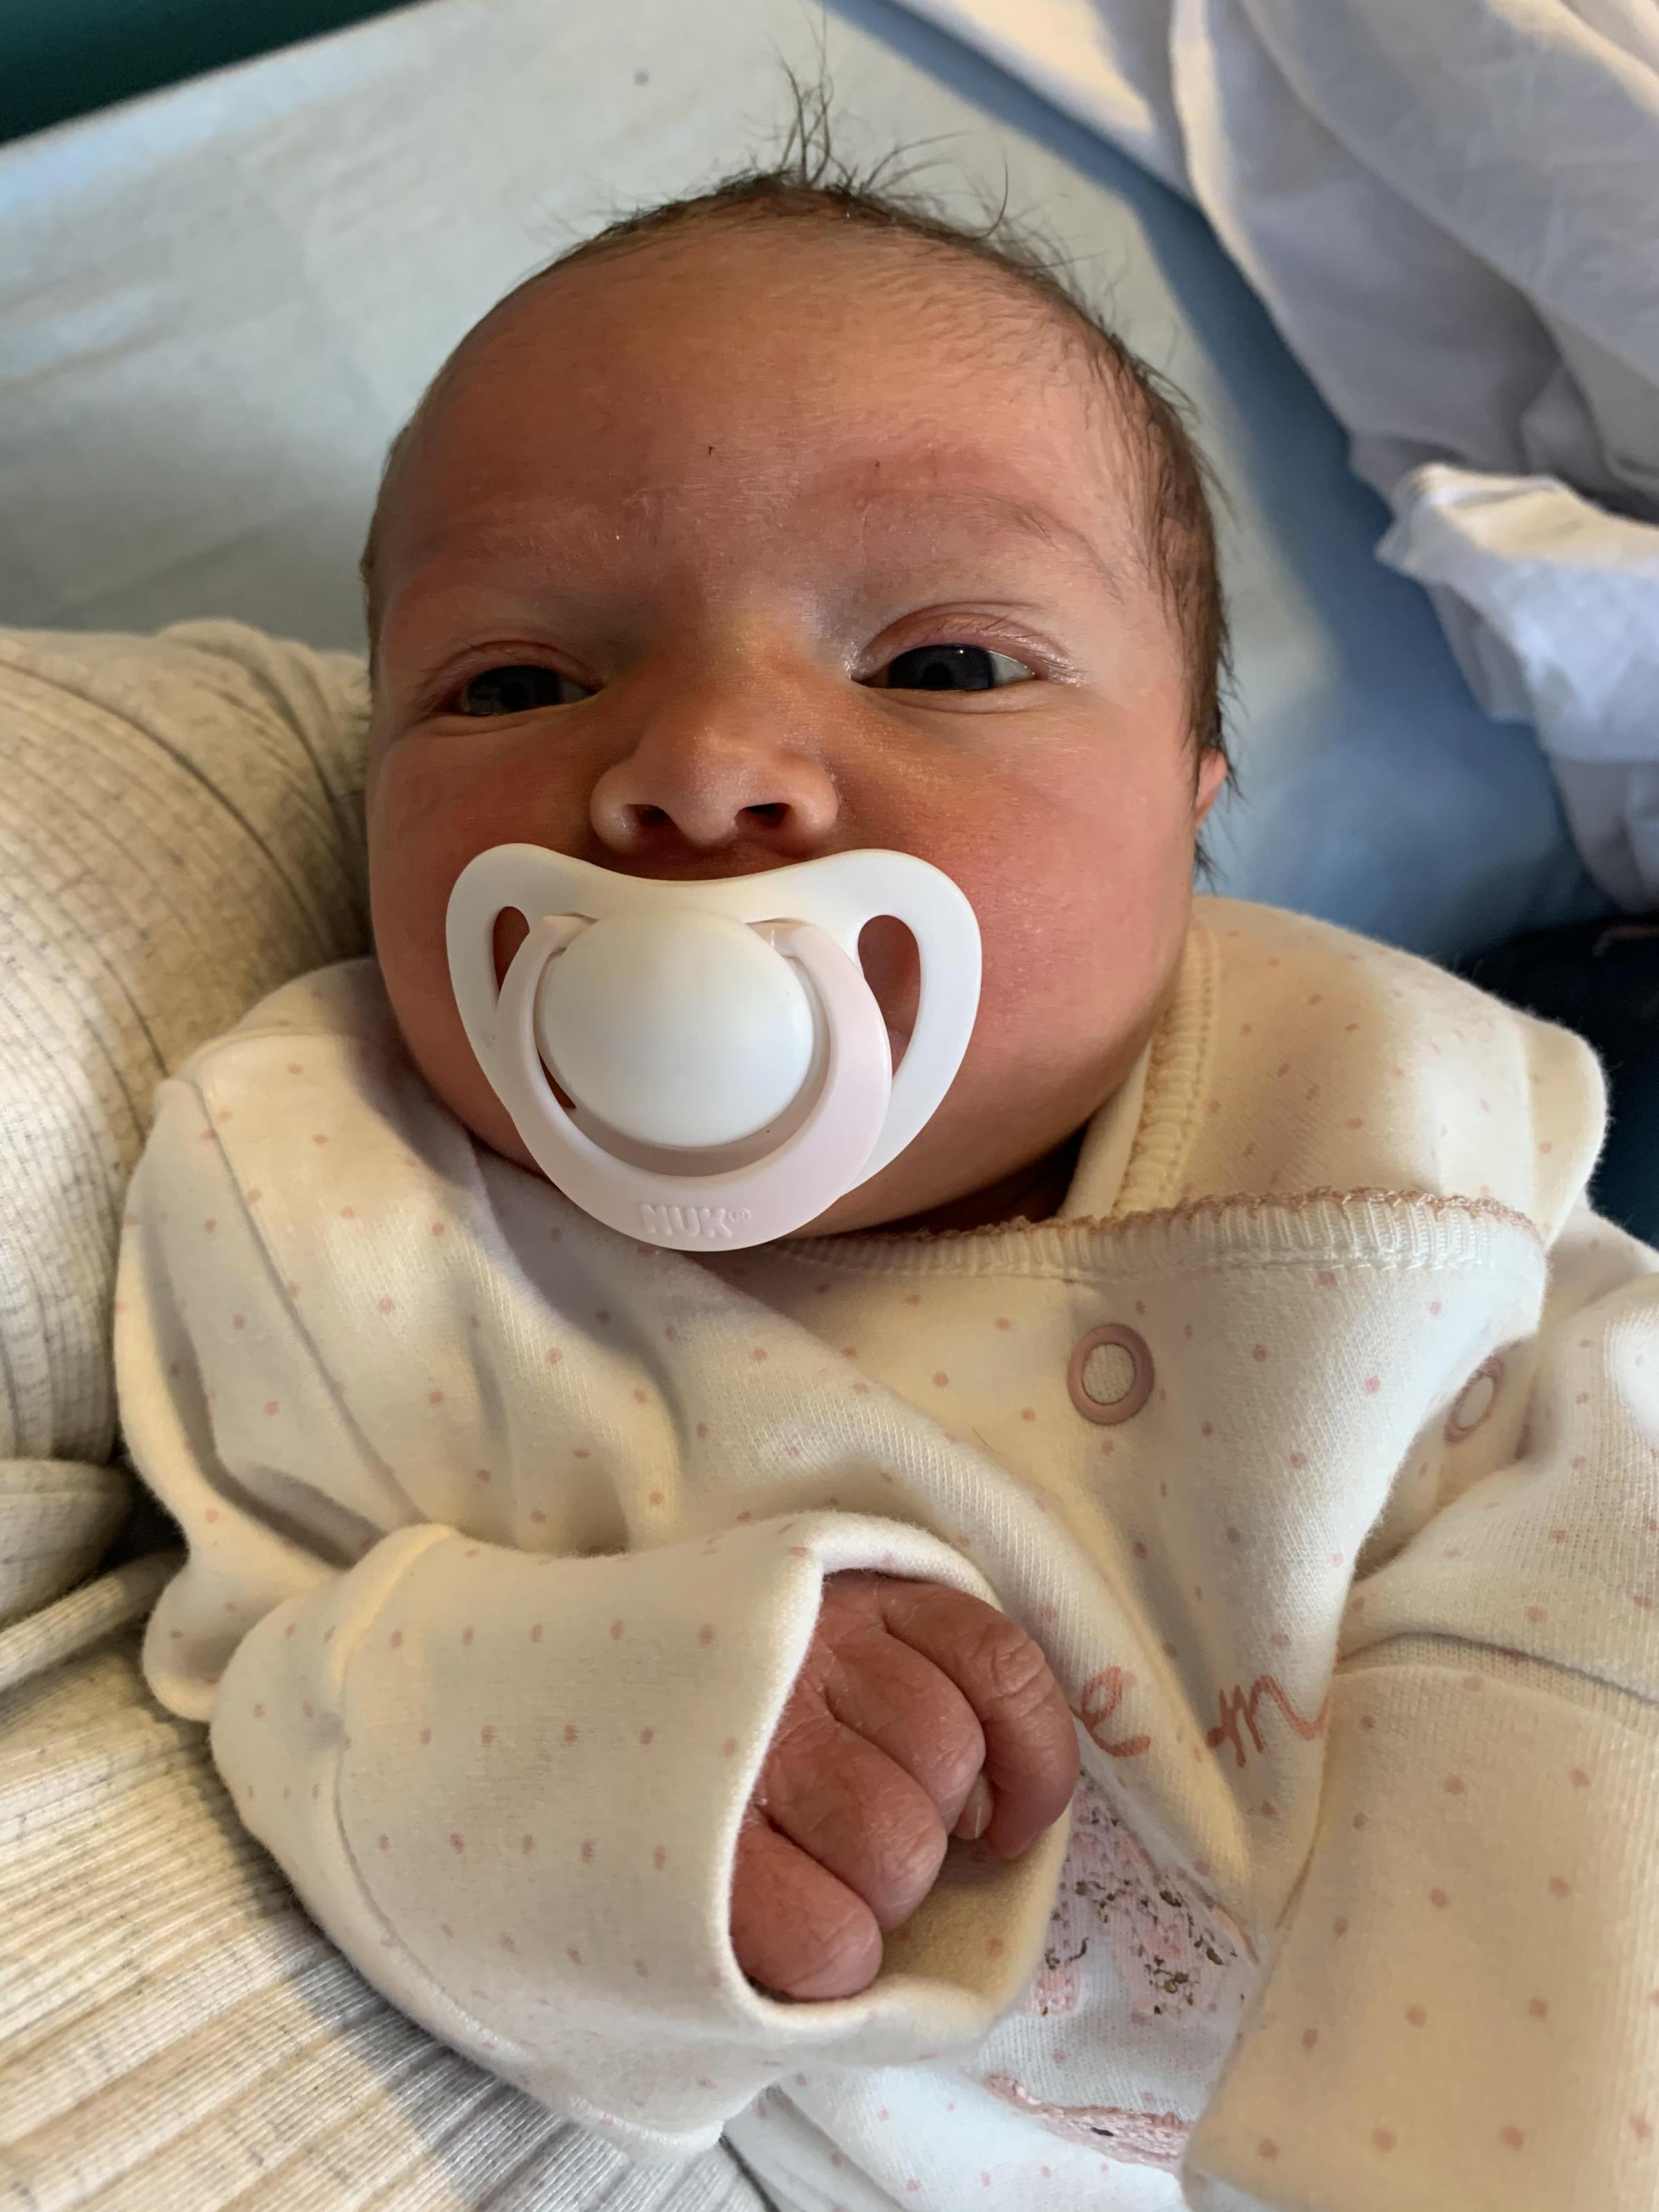 The Bolton News: Baby Reya